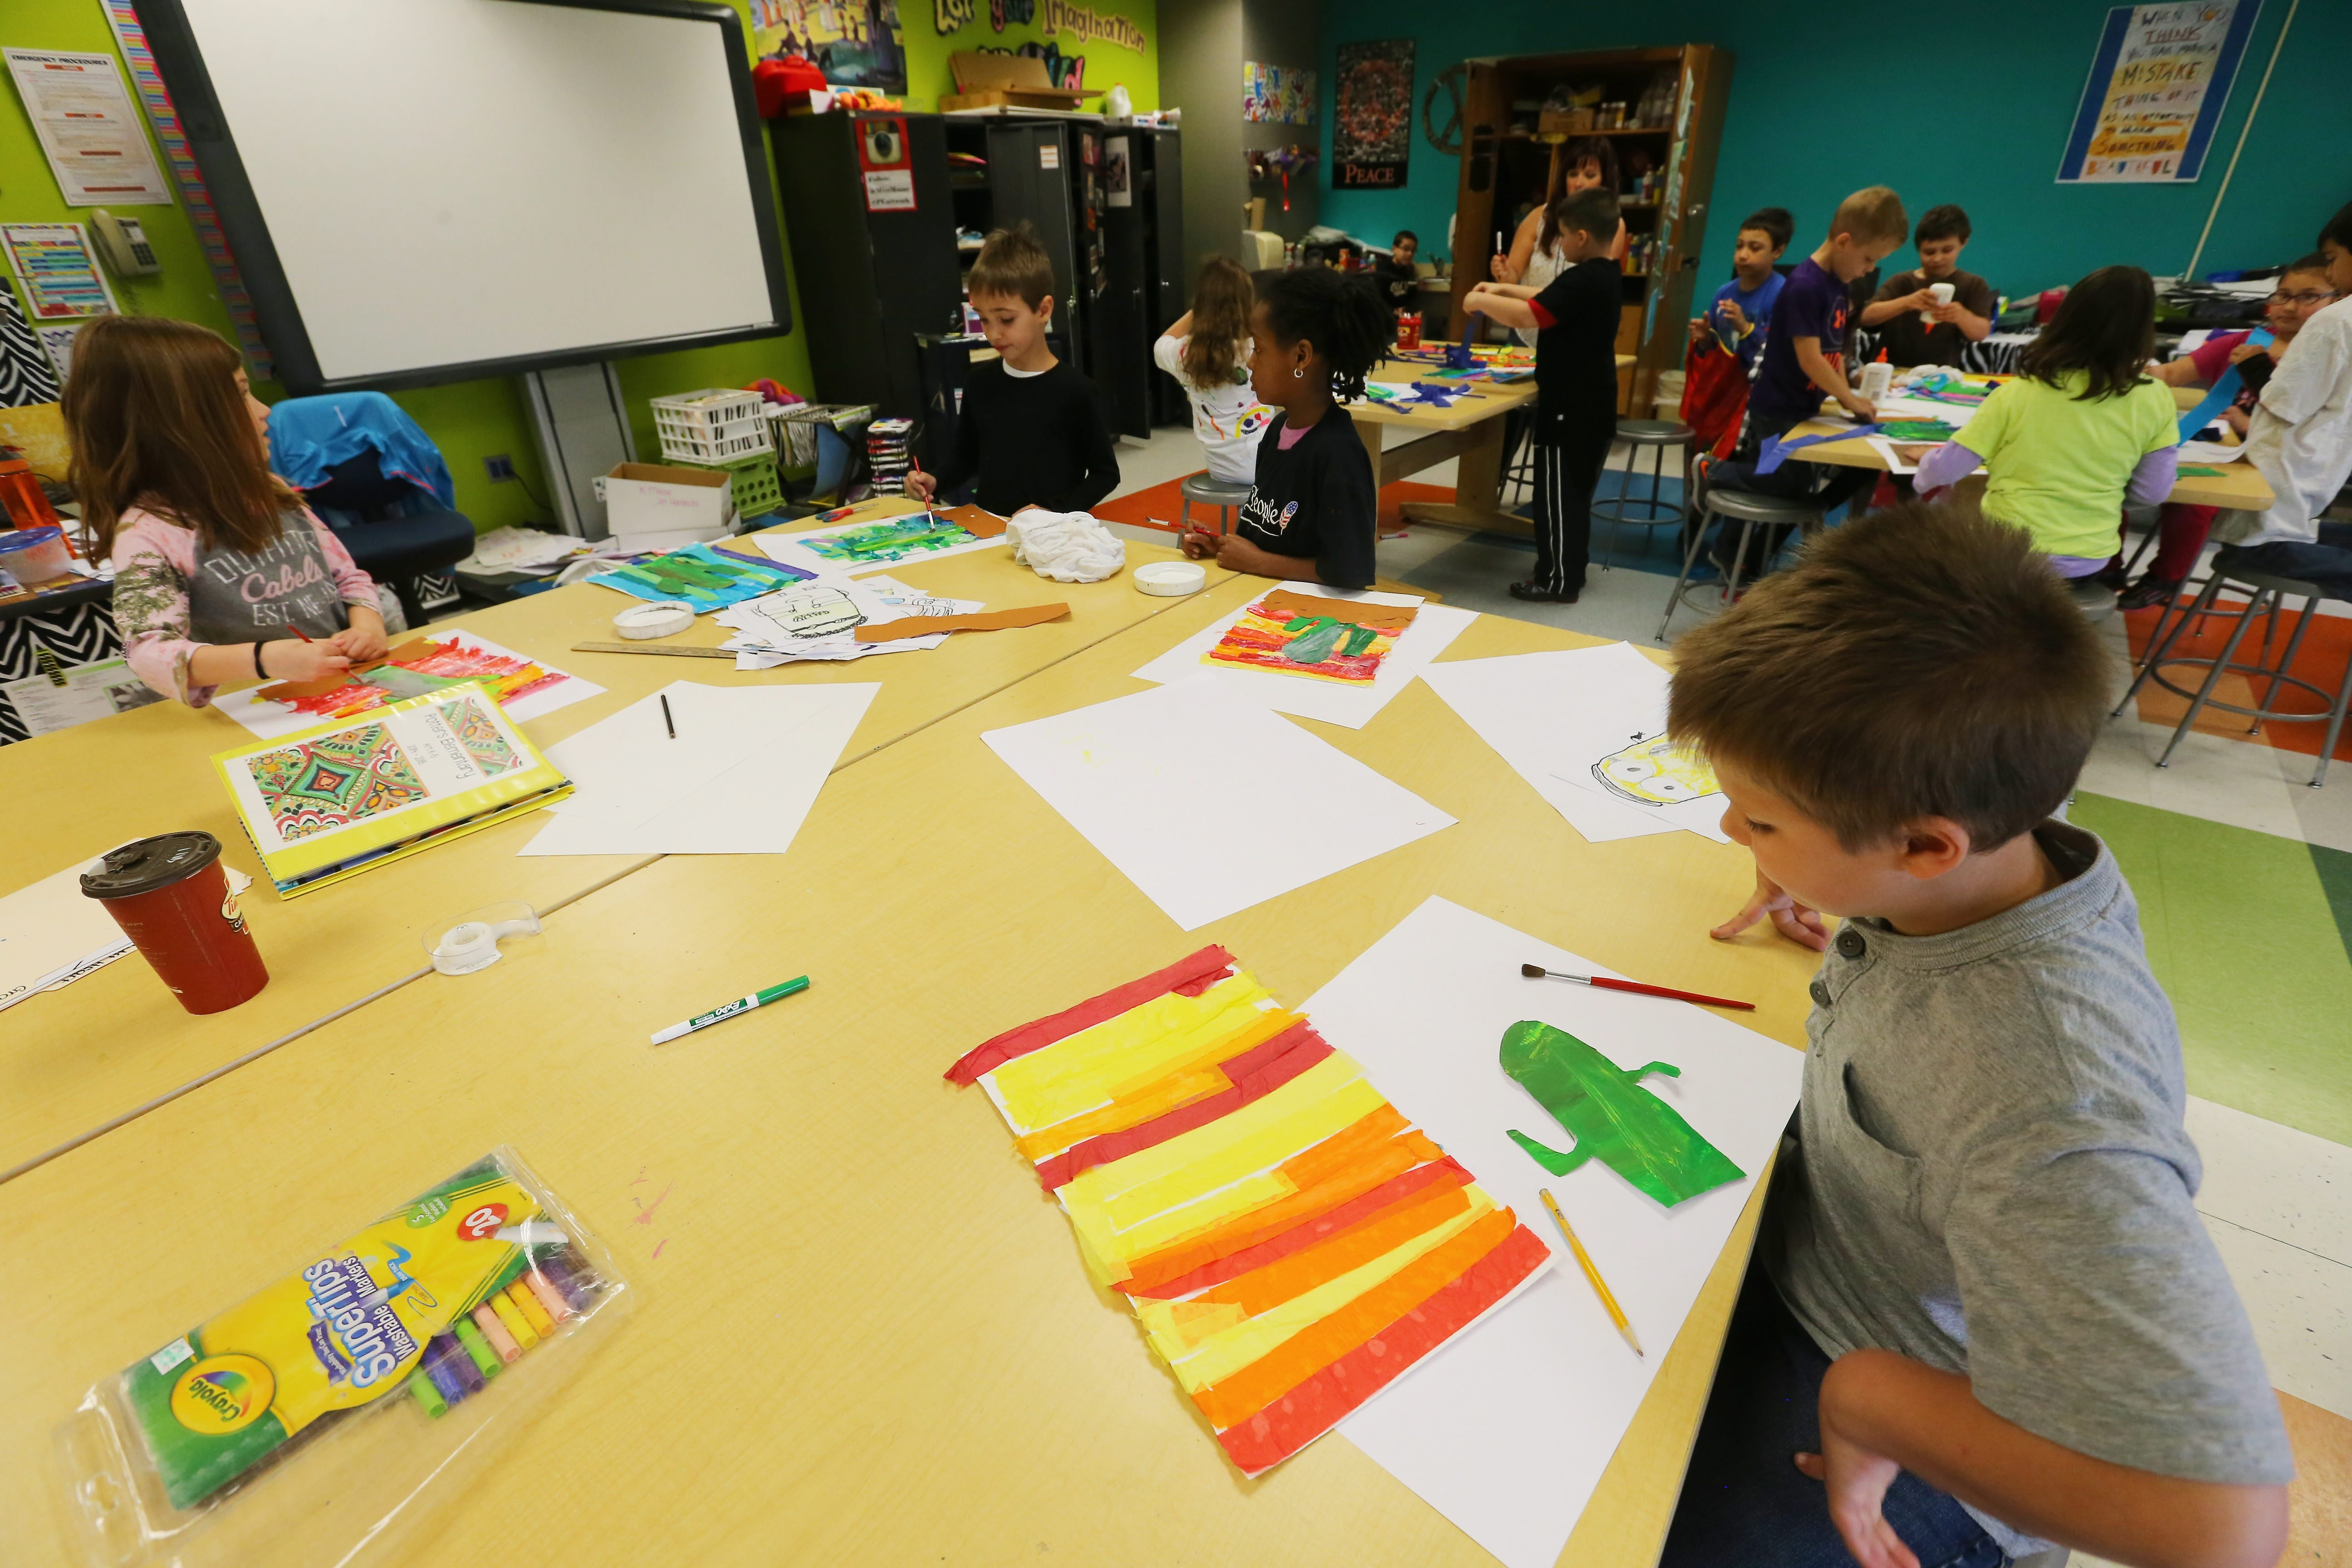 Second-graders work on an art project at Potters Road Elementary School in West Seneca on May 12, 2015.